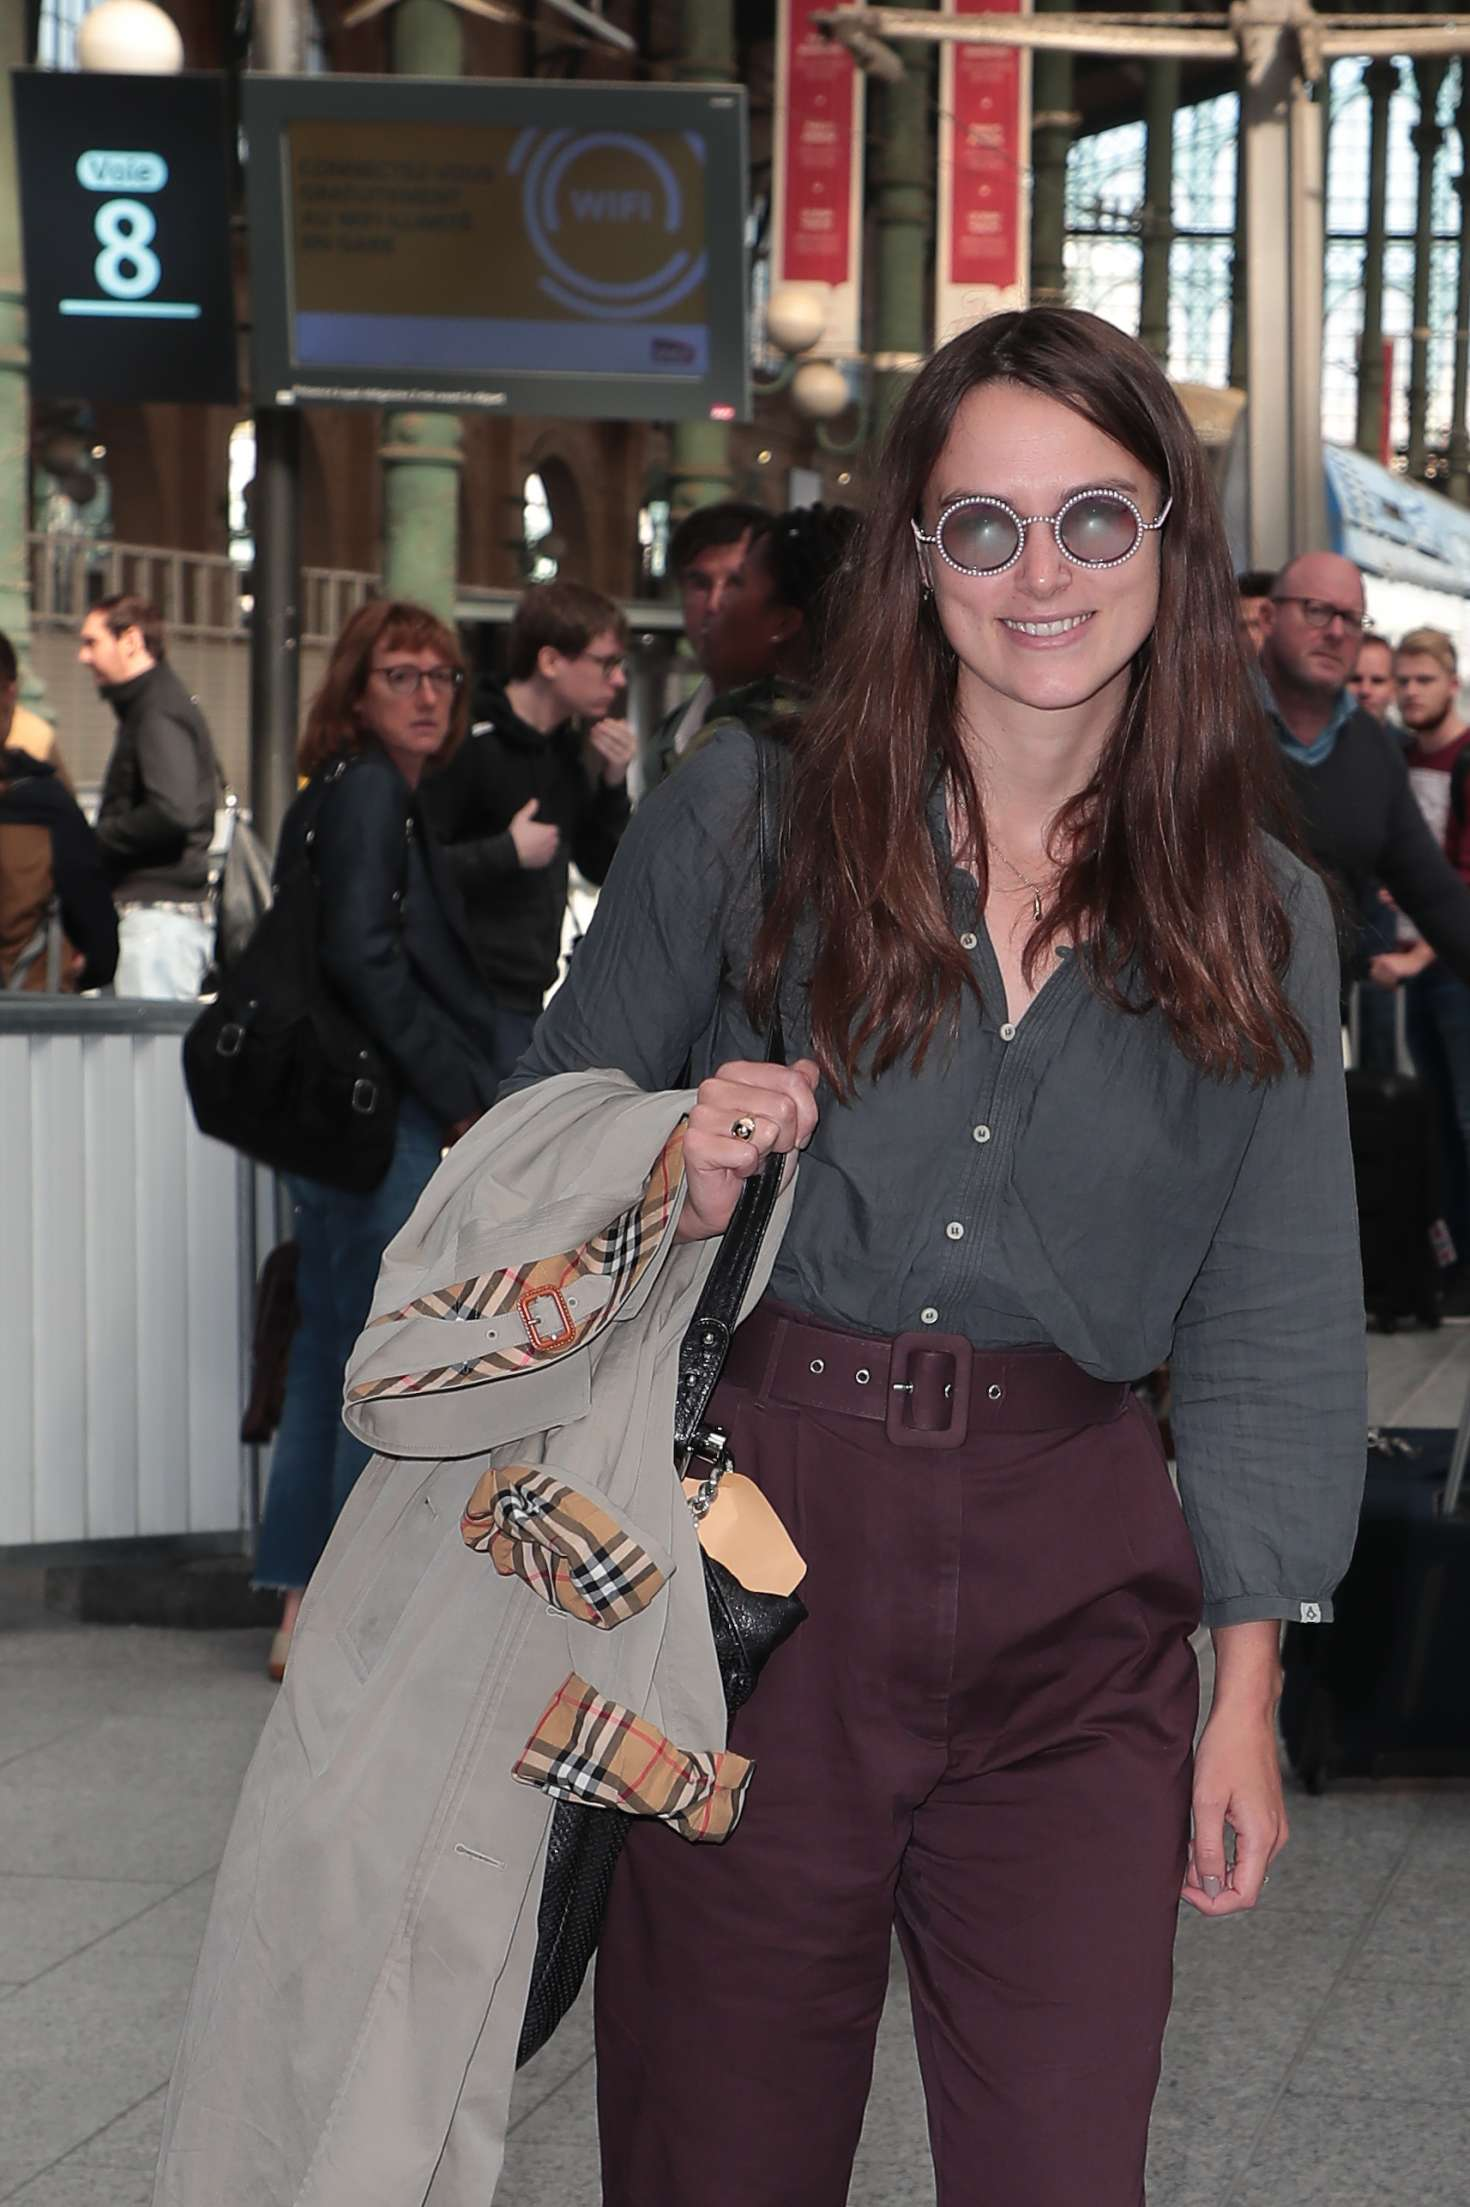 Keira Knightley - Arriving with the Eurostar in Paris